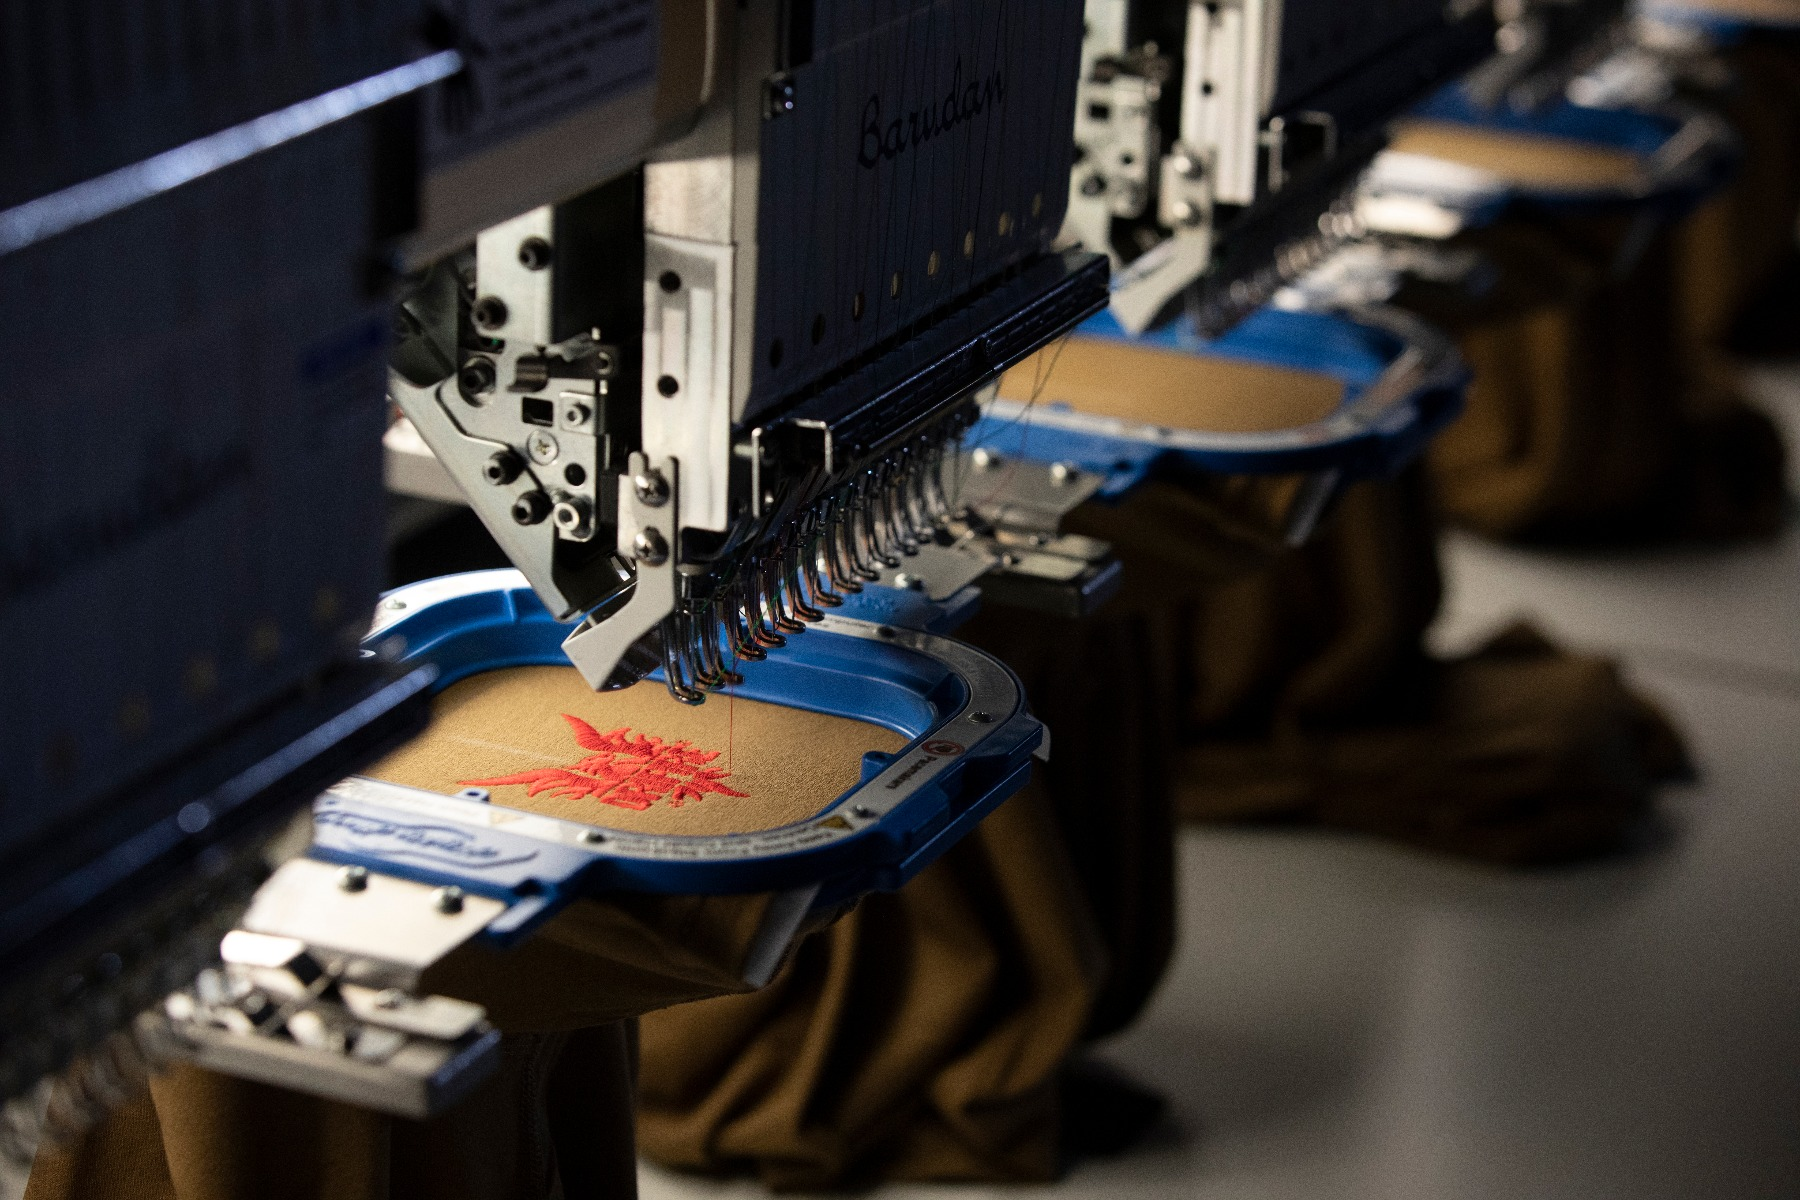 DRIFIRE military clothing and combat uniforms are sewn using materials sourced in the US.